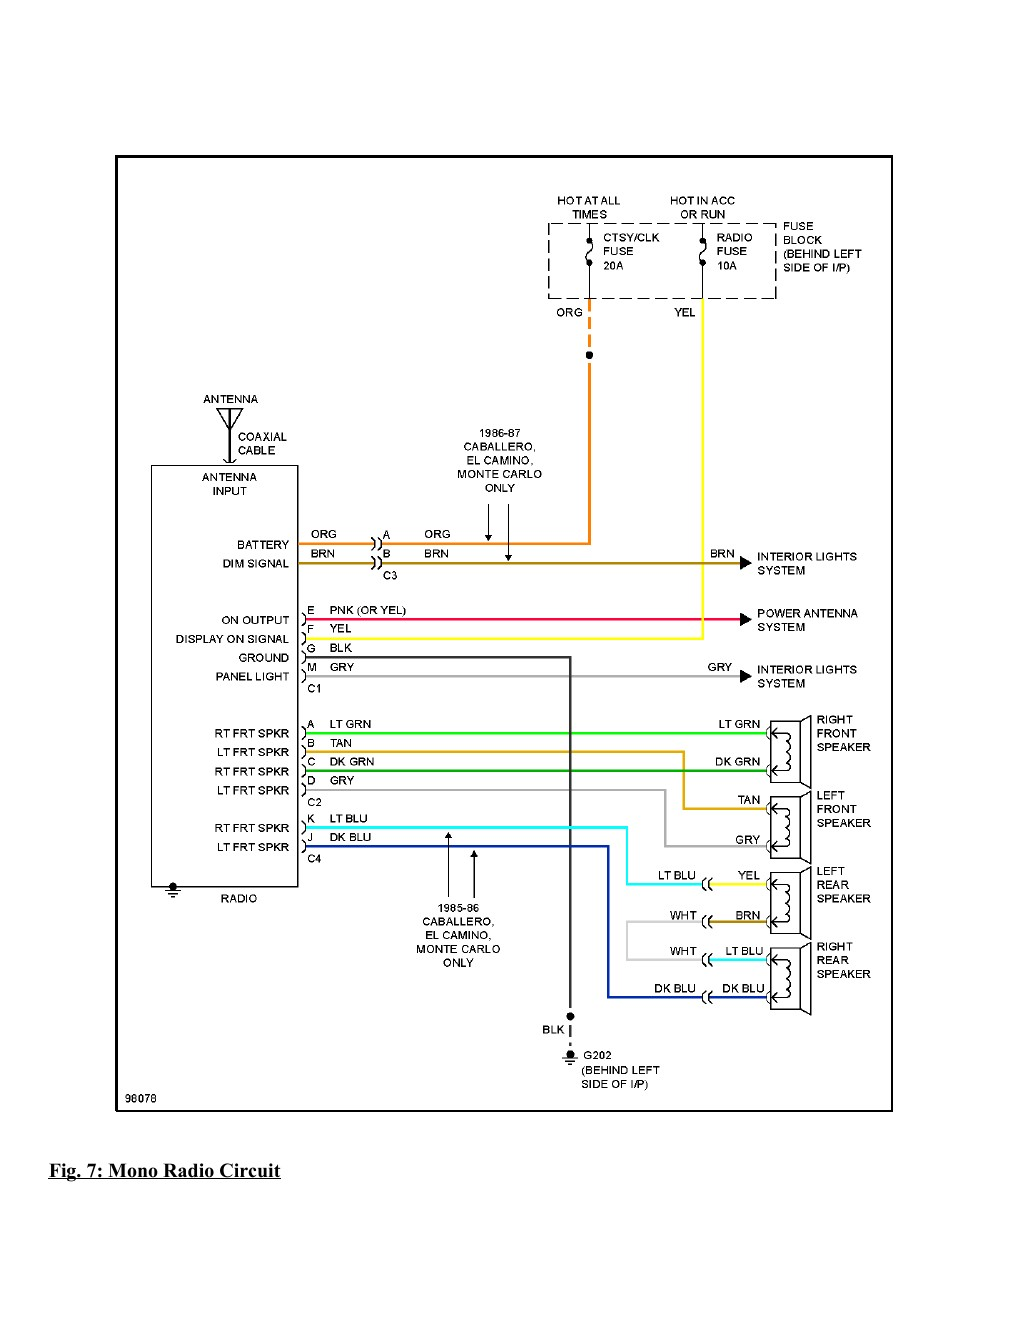 DIAGRAM] 1987 Chevy Monte Carlo Wiring Diagram FULL Version HD Quality Wiring  Diagram - LOTT-DIAGRAM.RADD.FR